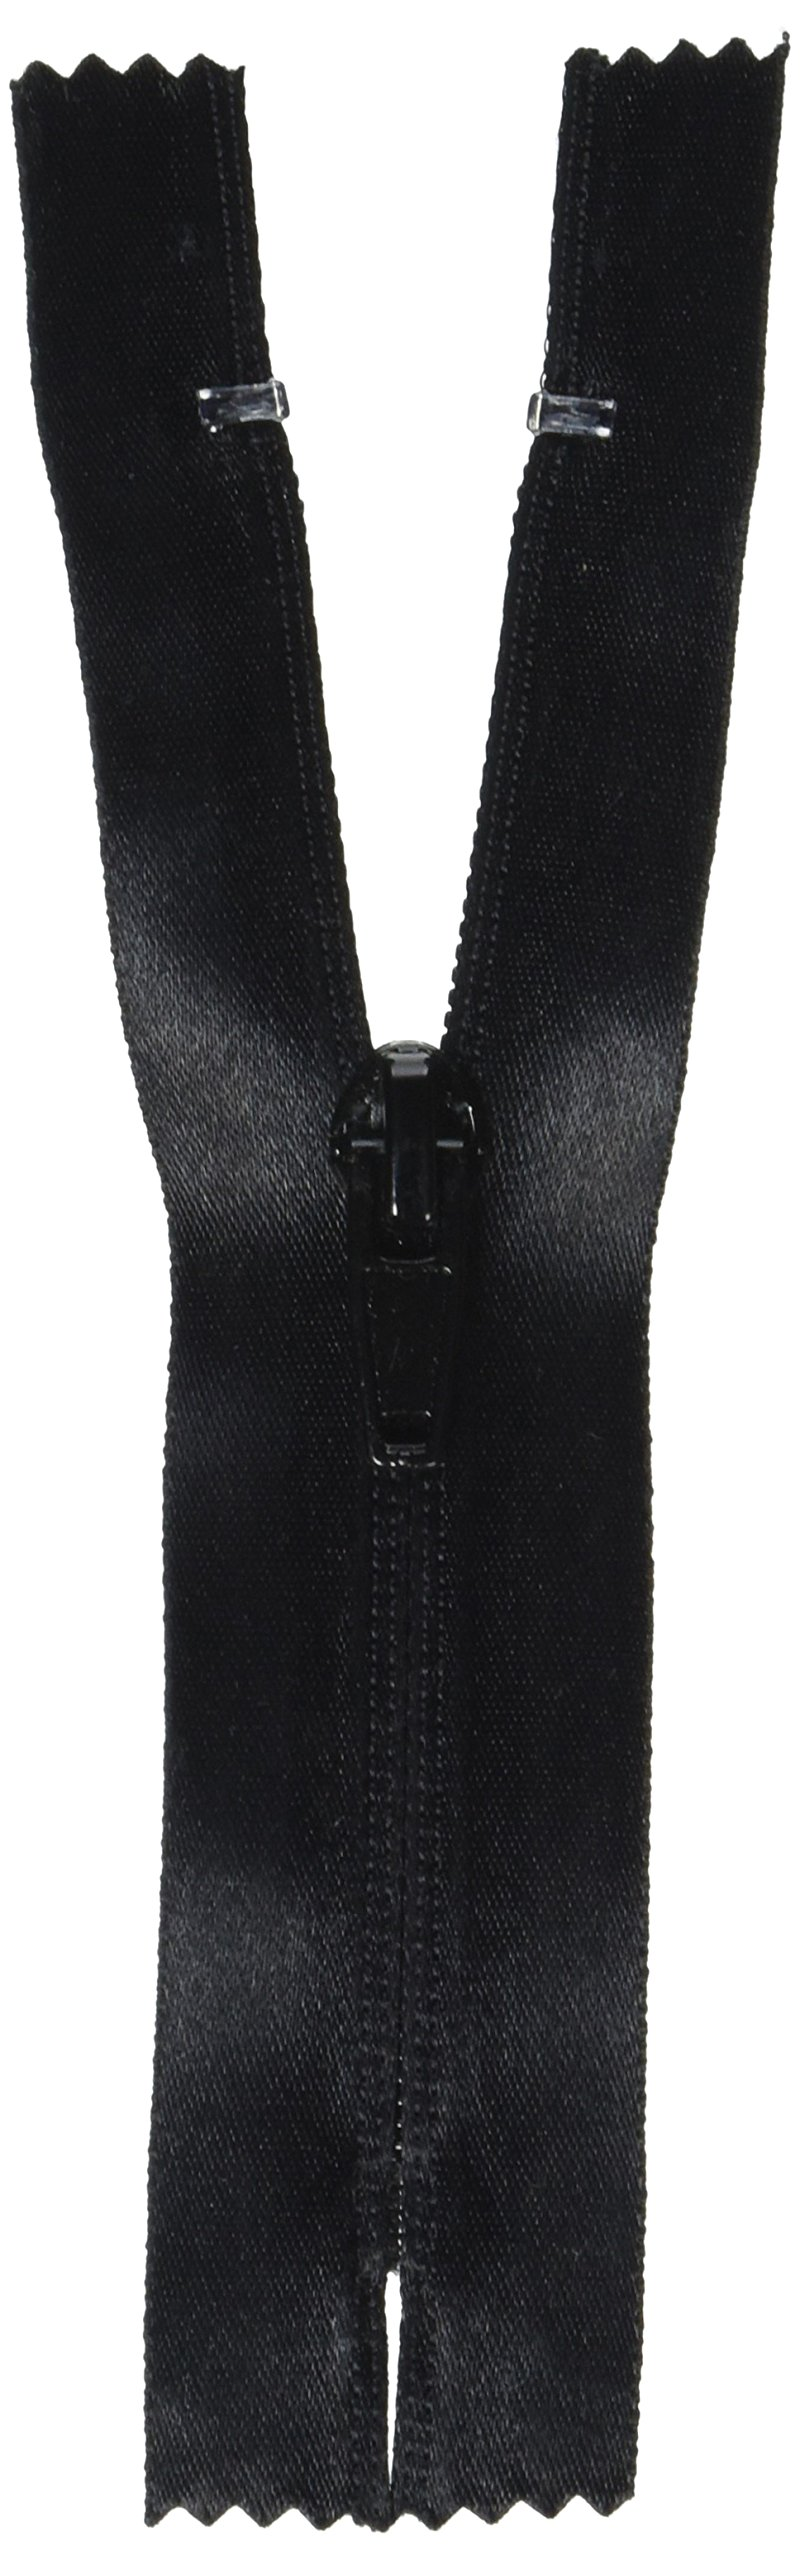 Coats: Thread & Zippers Water-Resistant Closed Bottom Zipper, 9-Inch, Black by Coats: Thread & Zippers